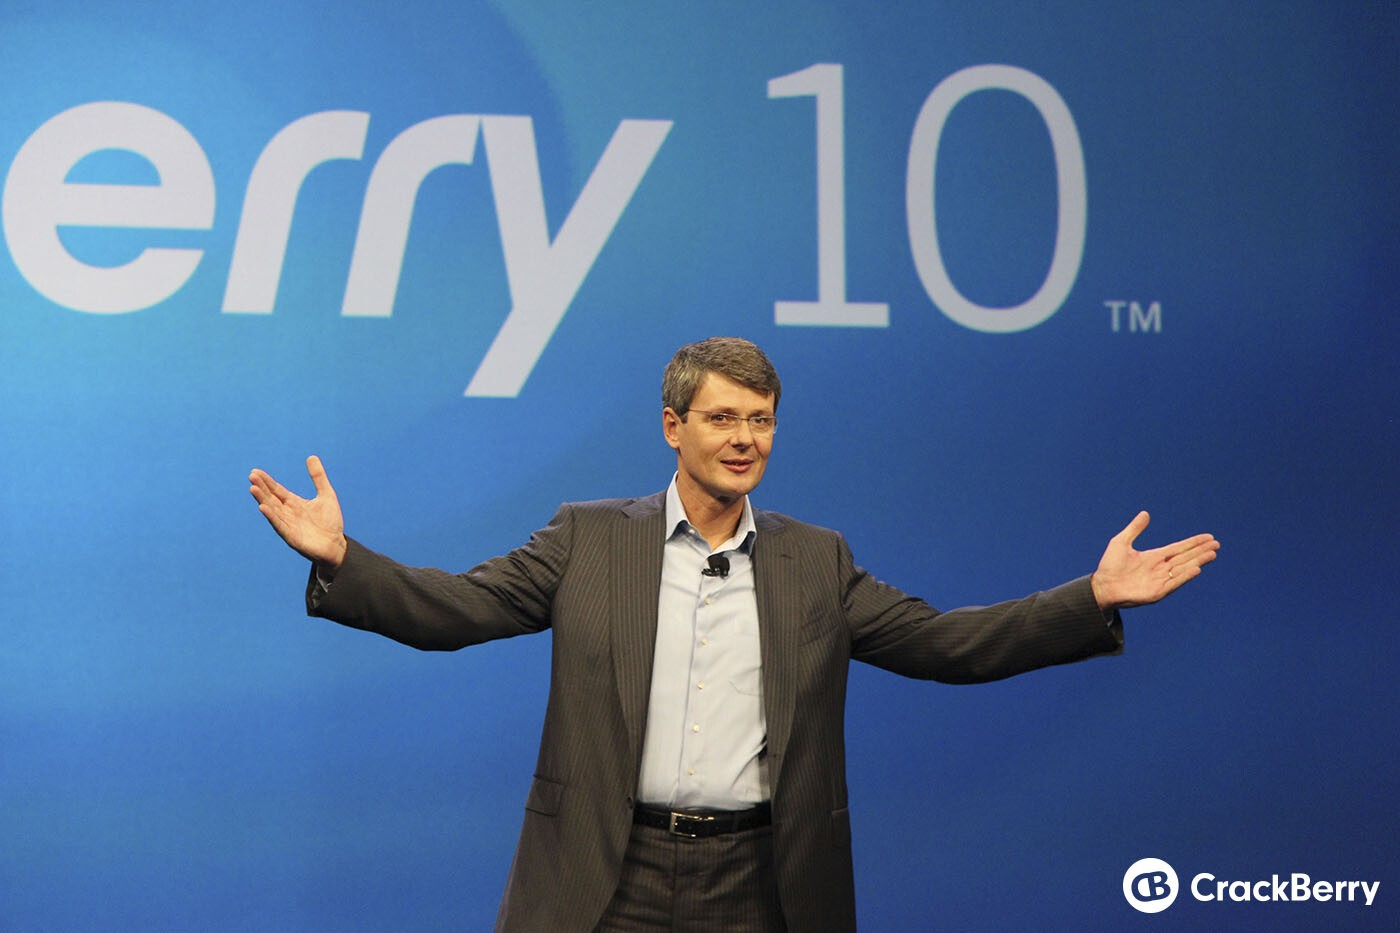 'We have now increased our production capacity.' - BlackBerry CEO, Thorsten Heins